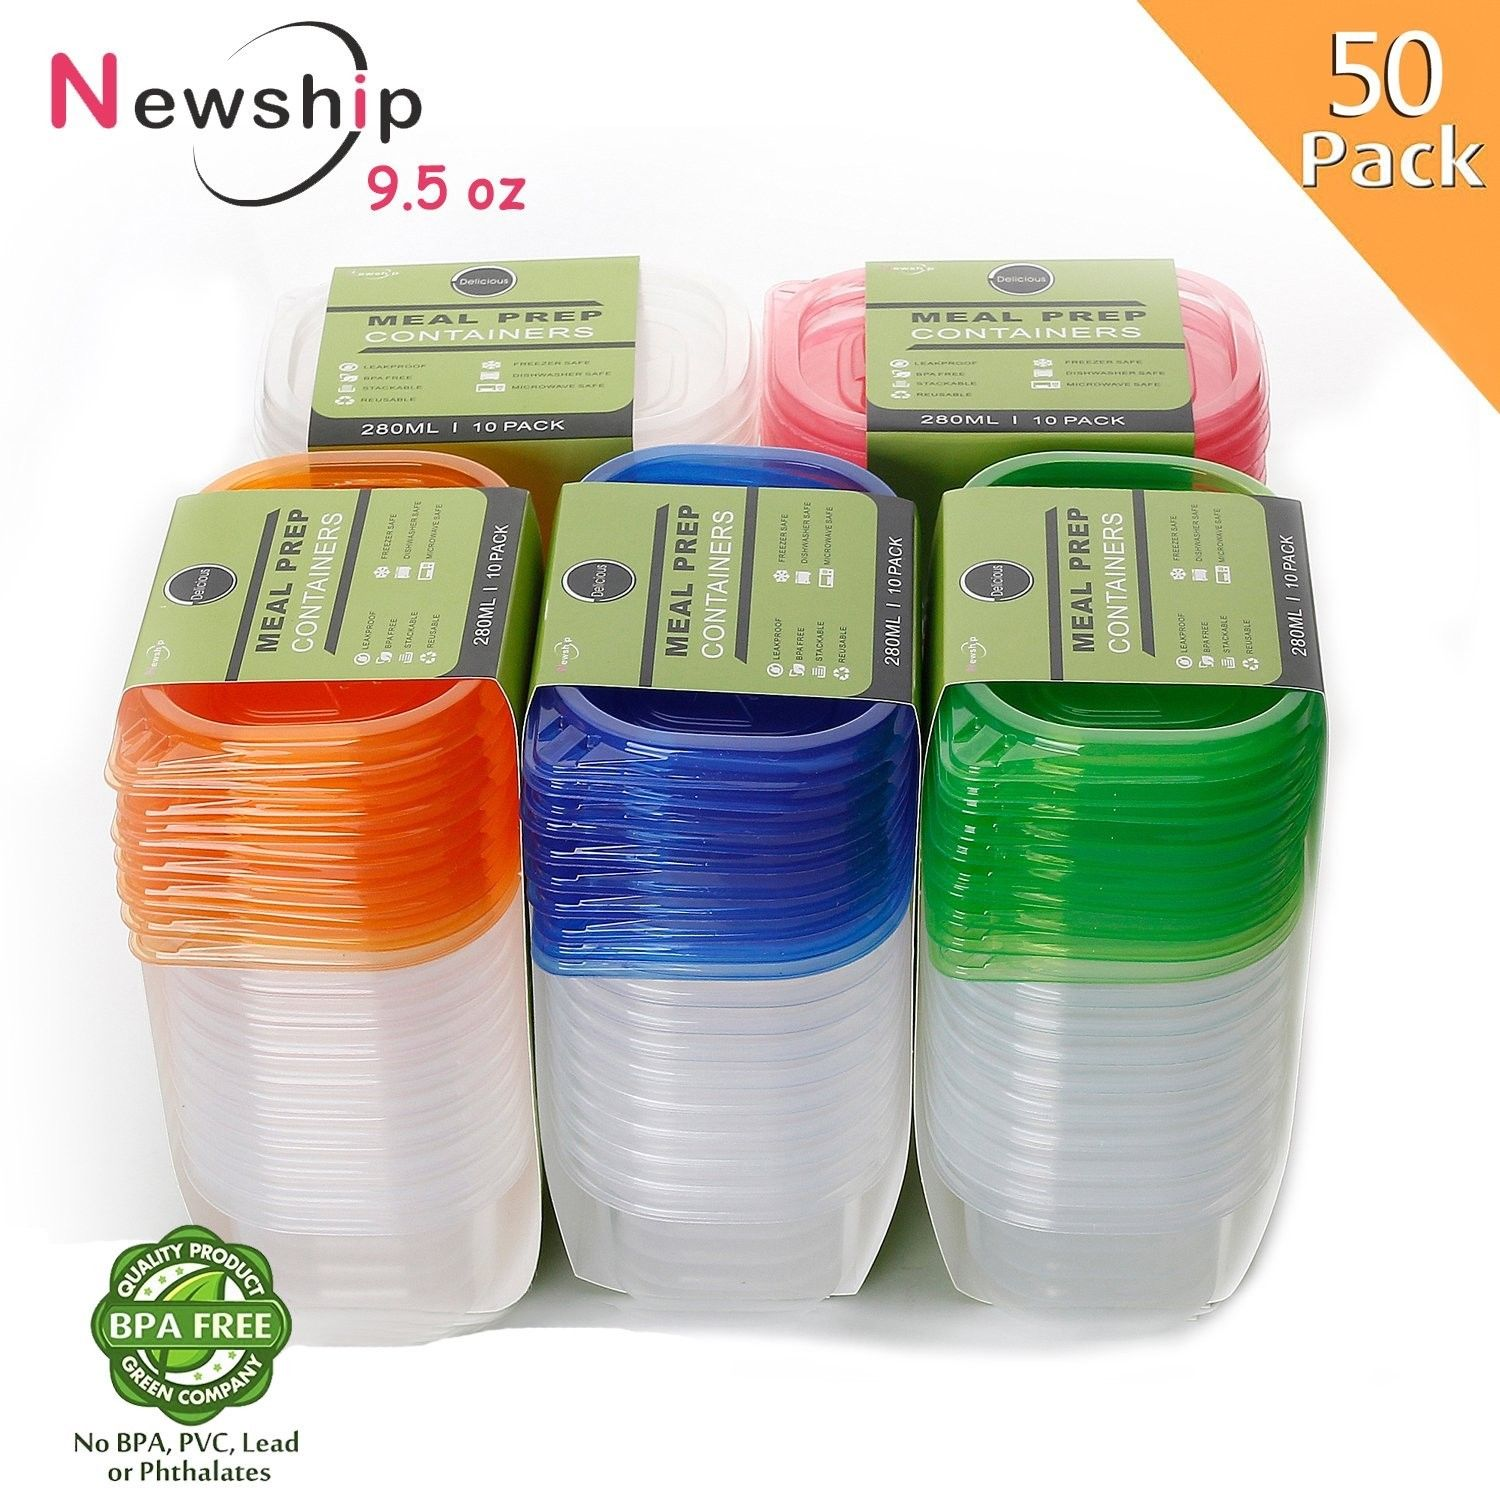 [50 Pack] Small Food Storage Containers with Lids, NewShip BPA Free Plastic 1